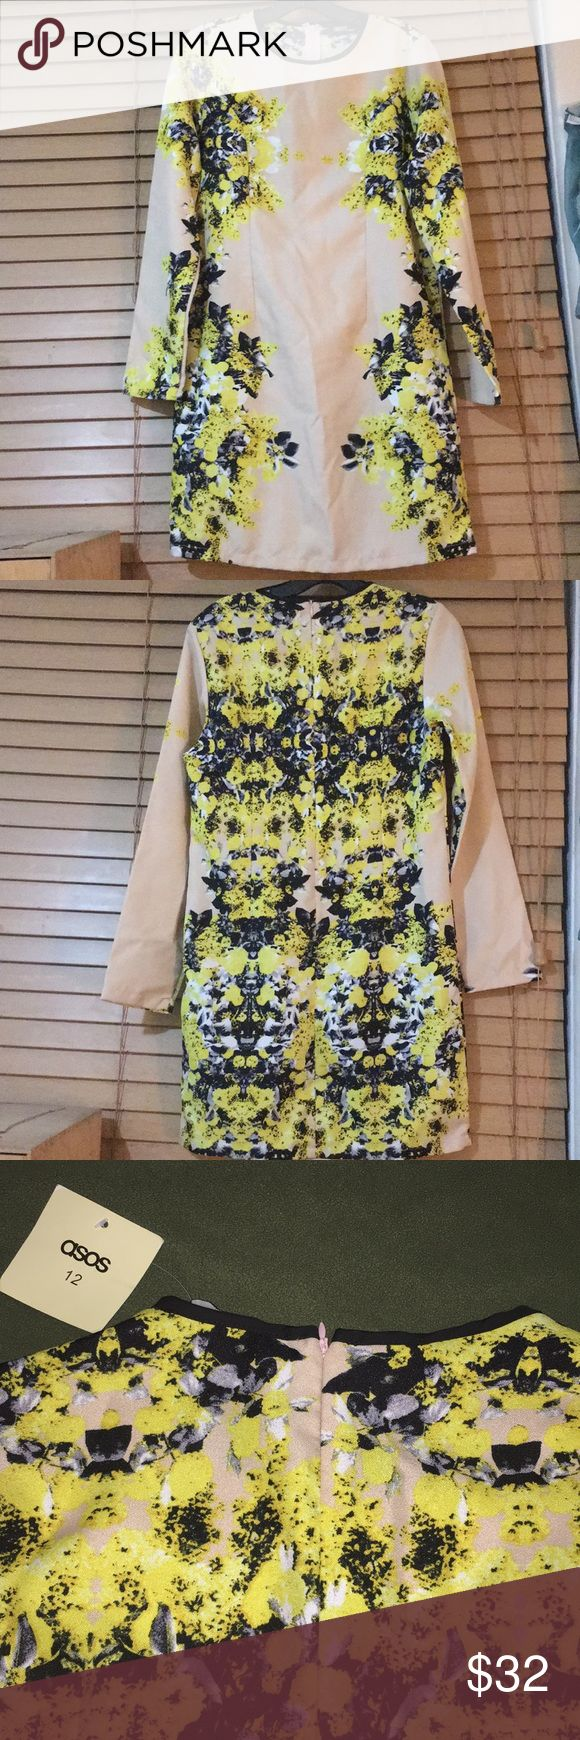 New ASOS Dress Size 12 UK/8 US New ASOS shift dress  UK Size 12, US Size 8 100% polyester, unlined  35-36 inch bust 23 inch long sleeves About 34 inches long from top of shoulder  Cream background with yellow flowers, gray/black/white leaves  Black around neckline  Zip-up back ASOS Dresses Long Sleeve